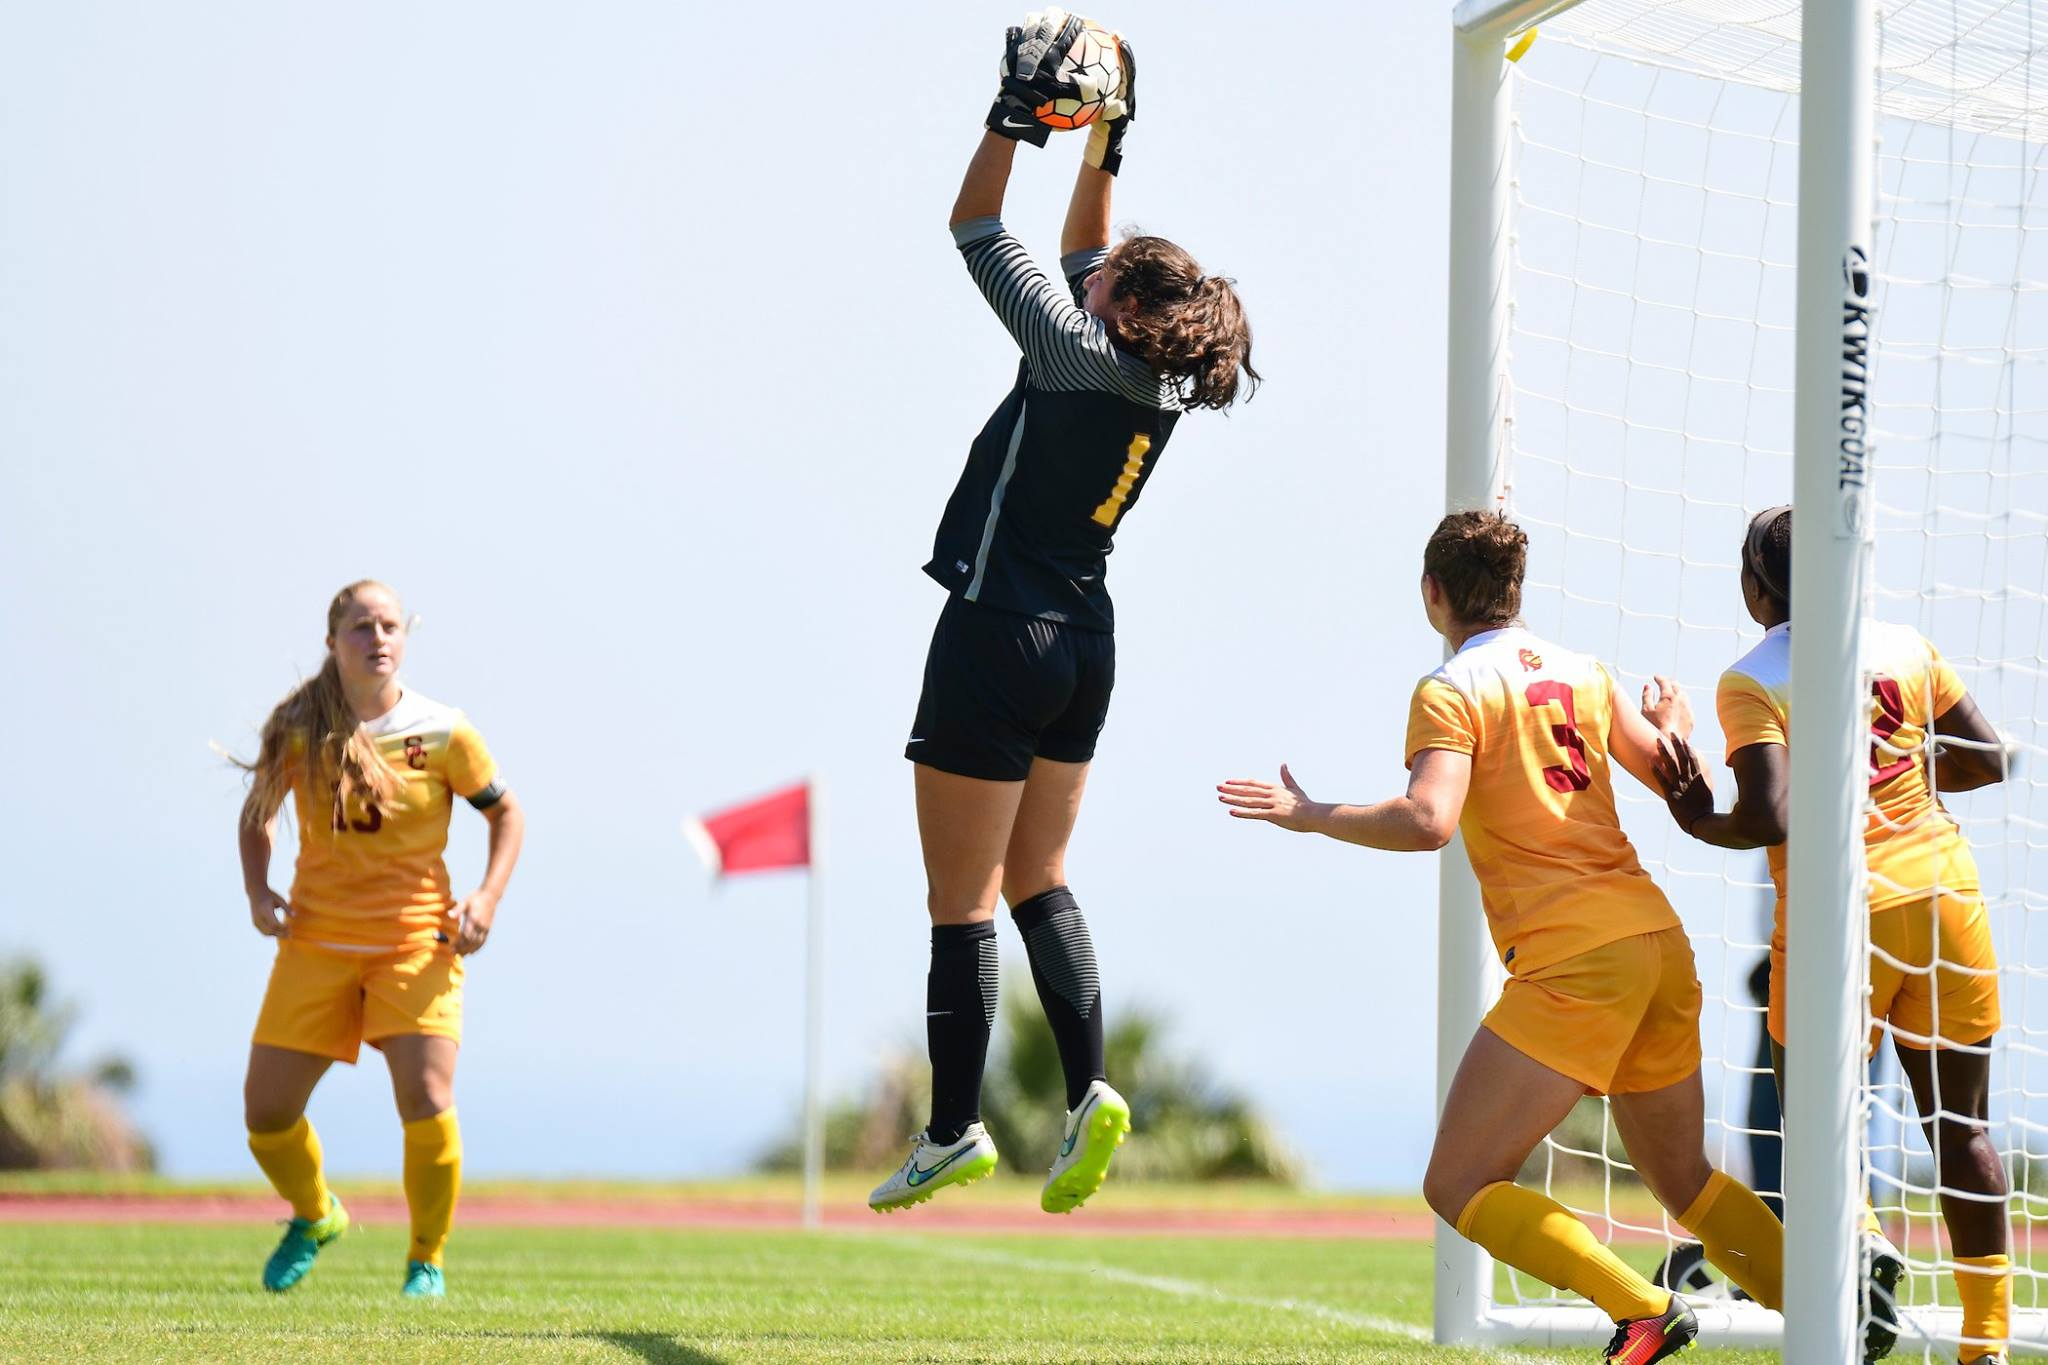 California Top 25 College Recap: Stanford, USC, UCLA, & Cal Women All Shine